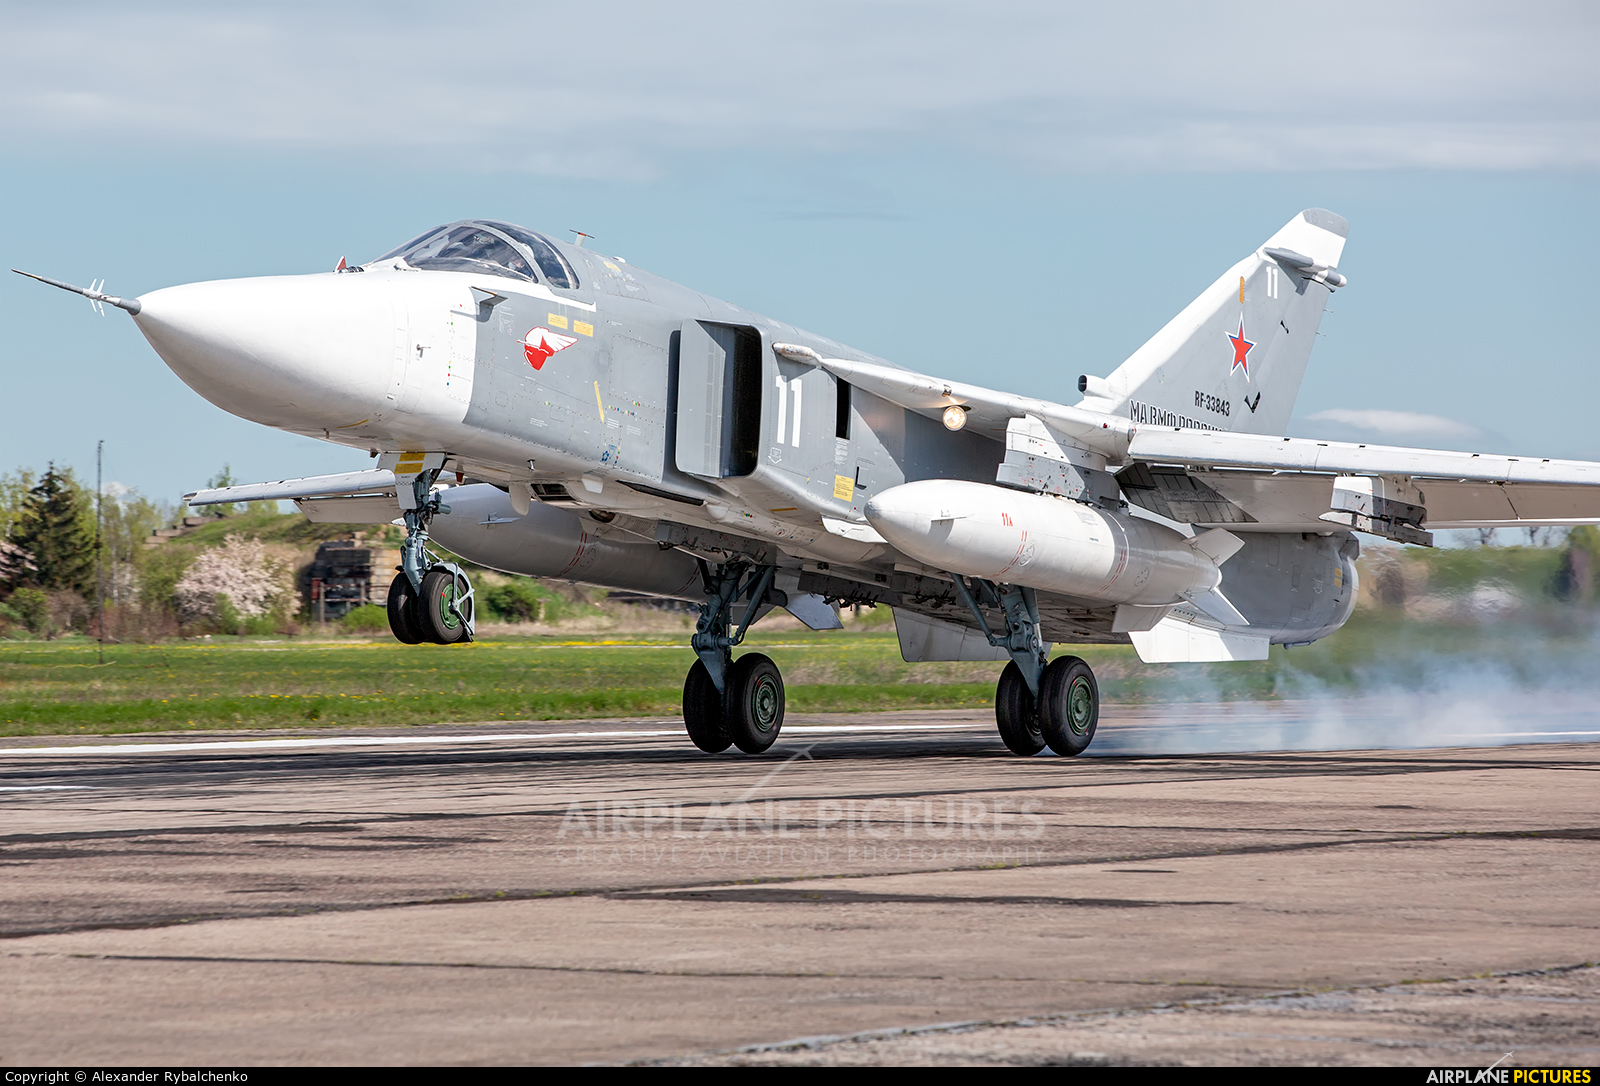 Russia - Navy RF-33843 aircraft at Undisclosed Location